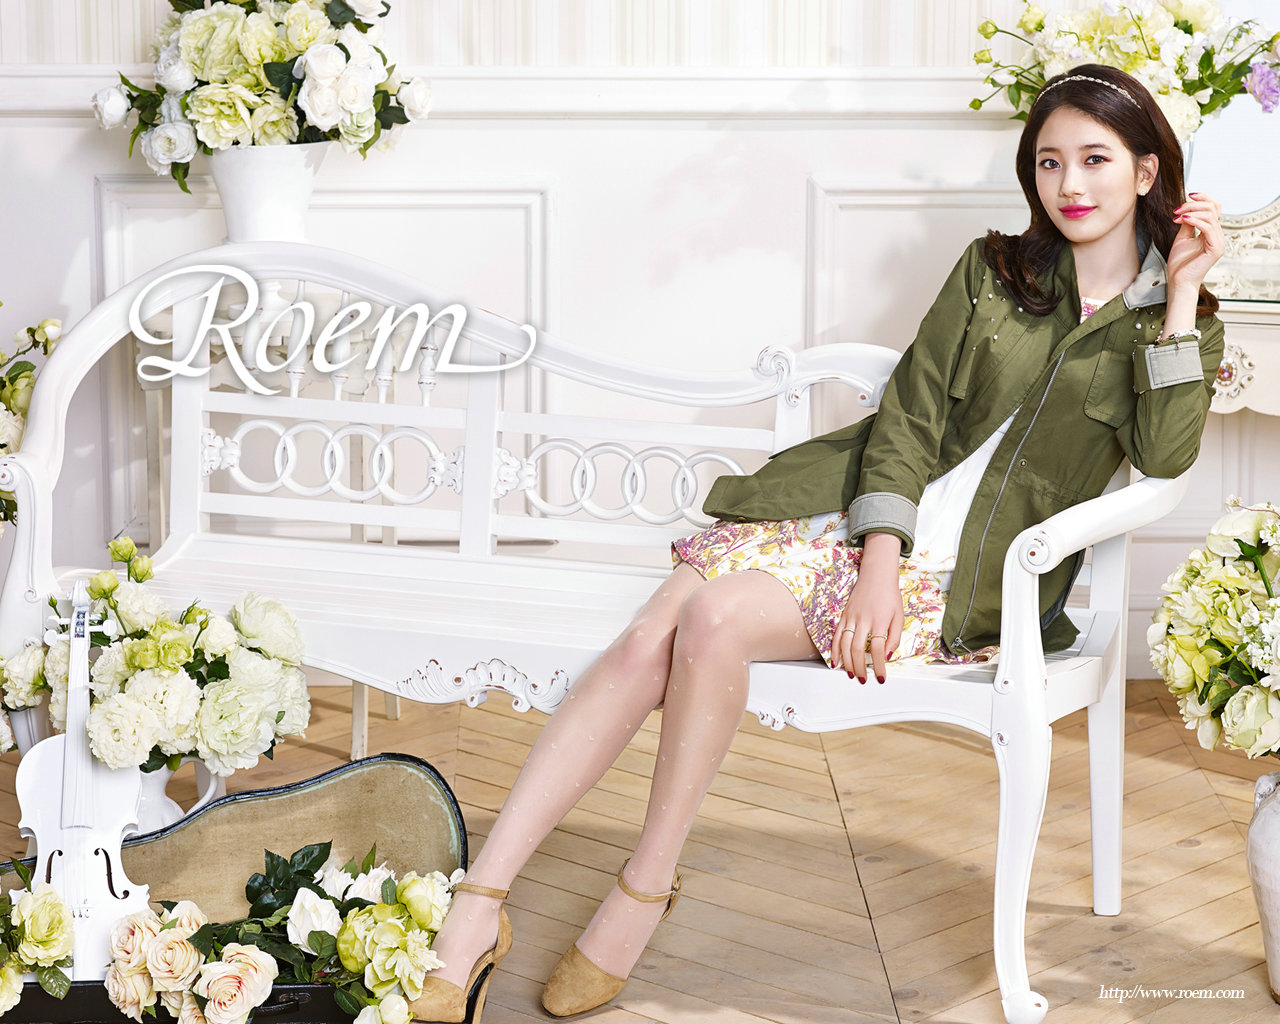 suzy for roem